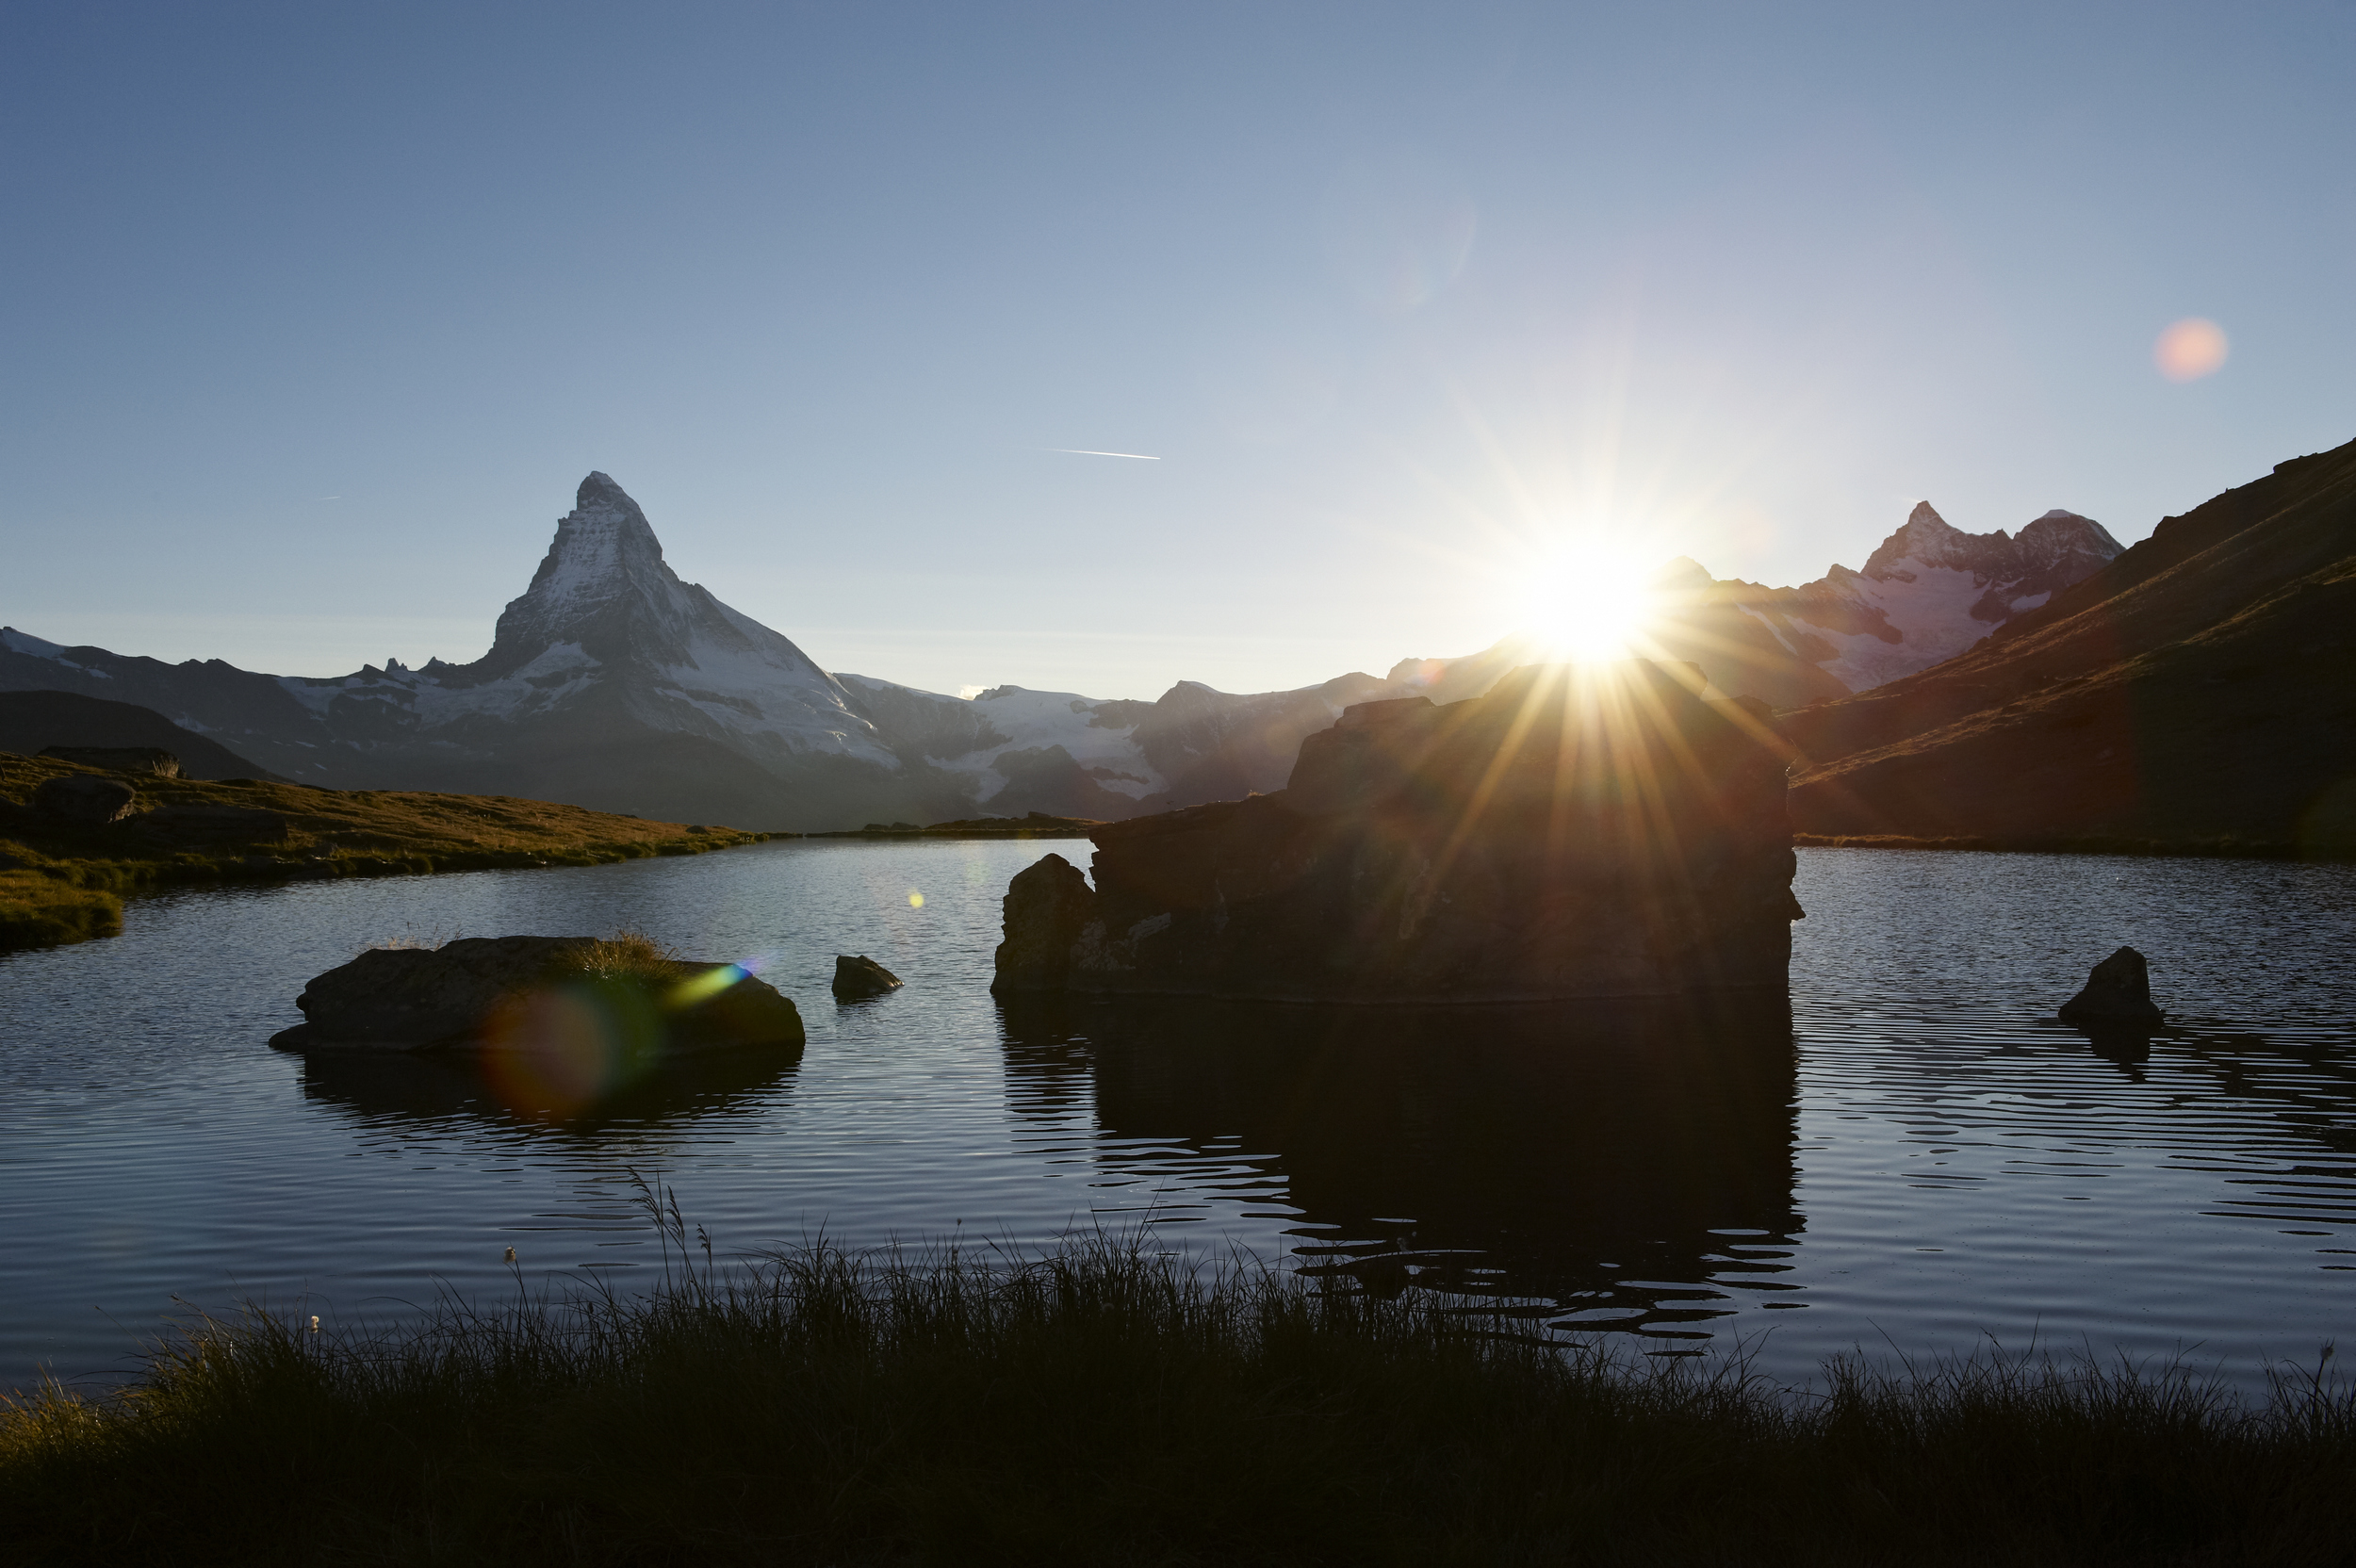 The Stellisee and the Matterhorn in the background (© Zermatt Tourism / Michael Portmann)